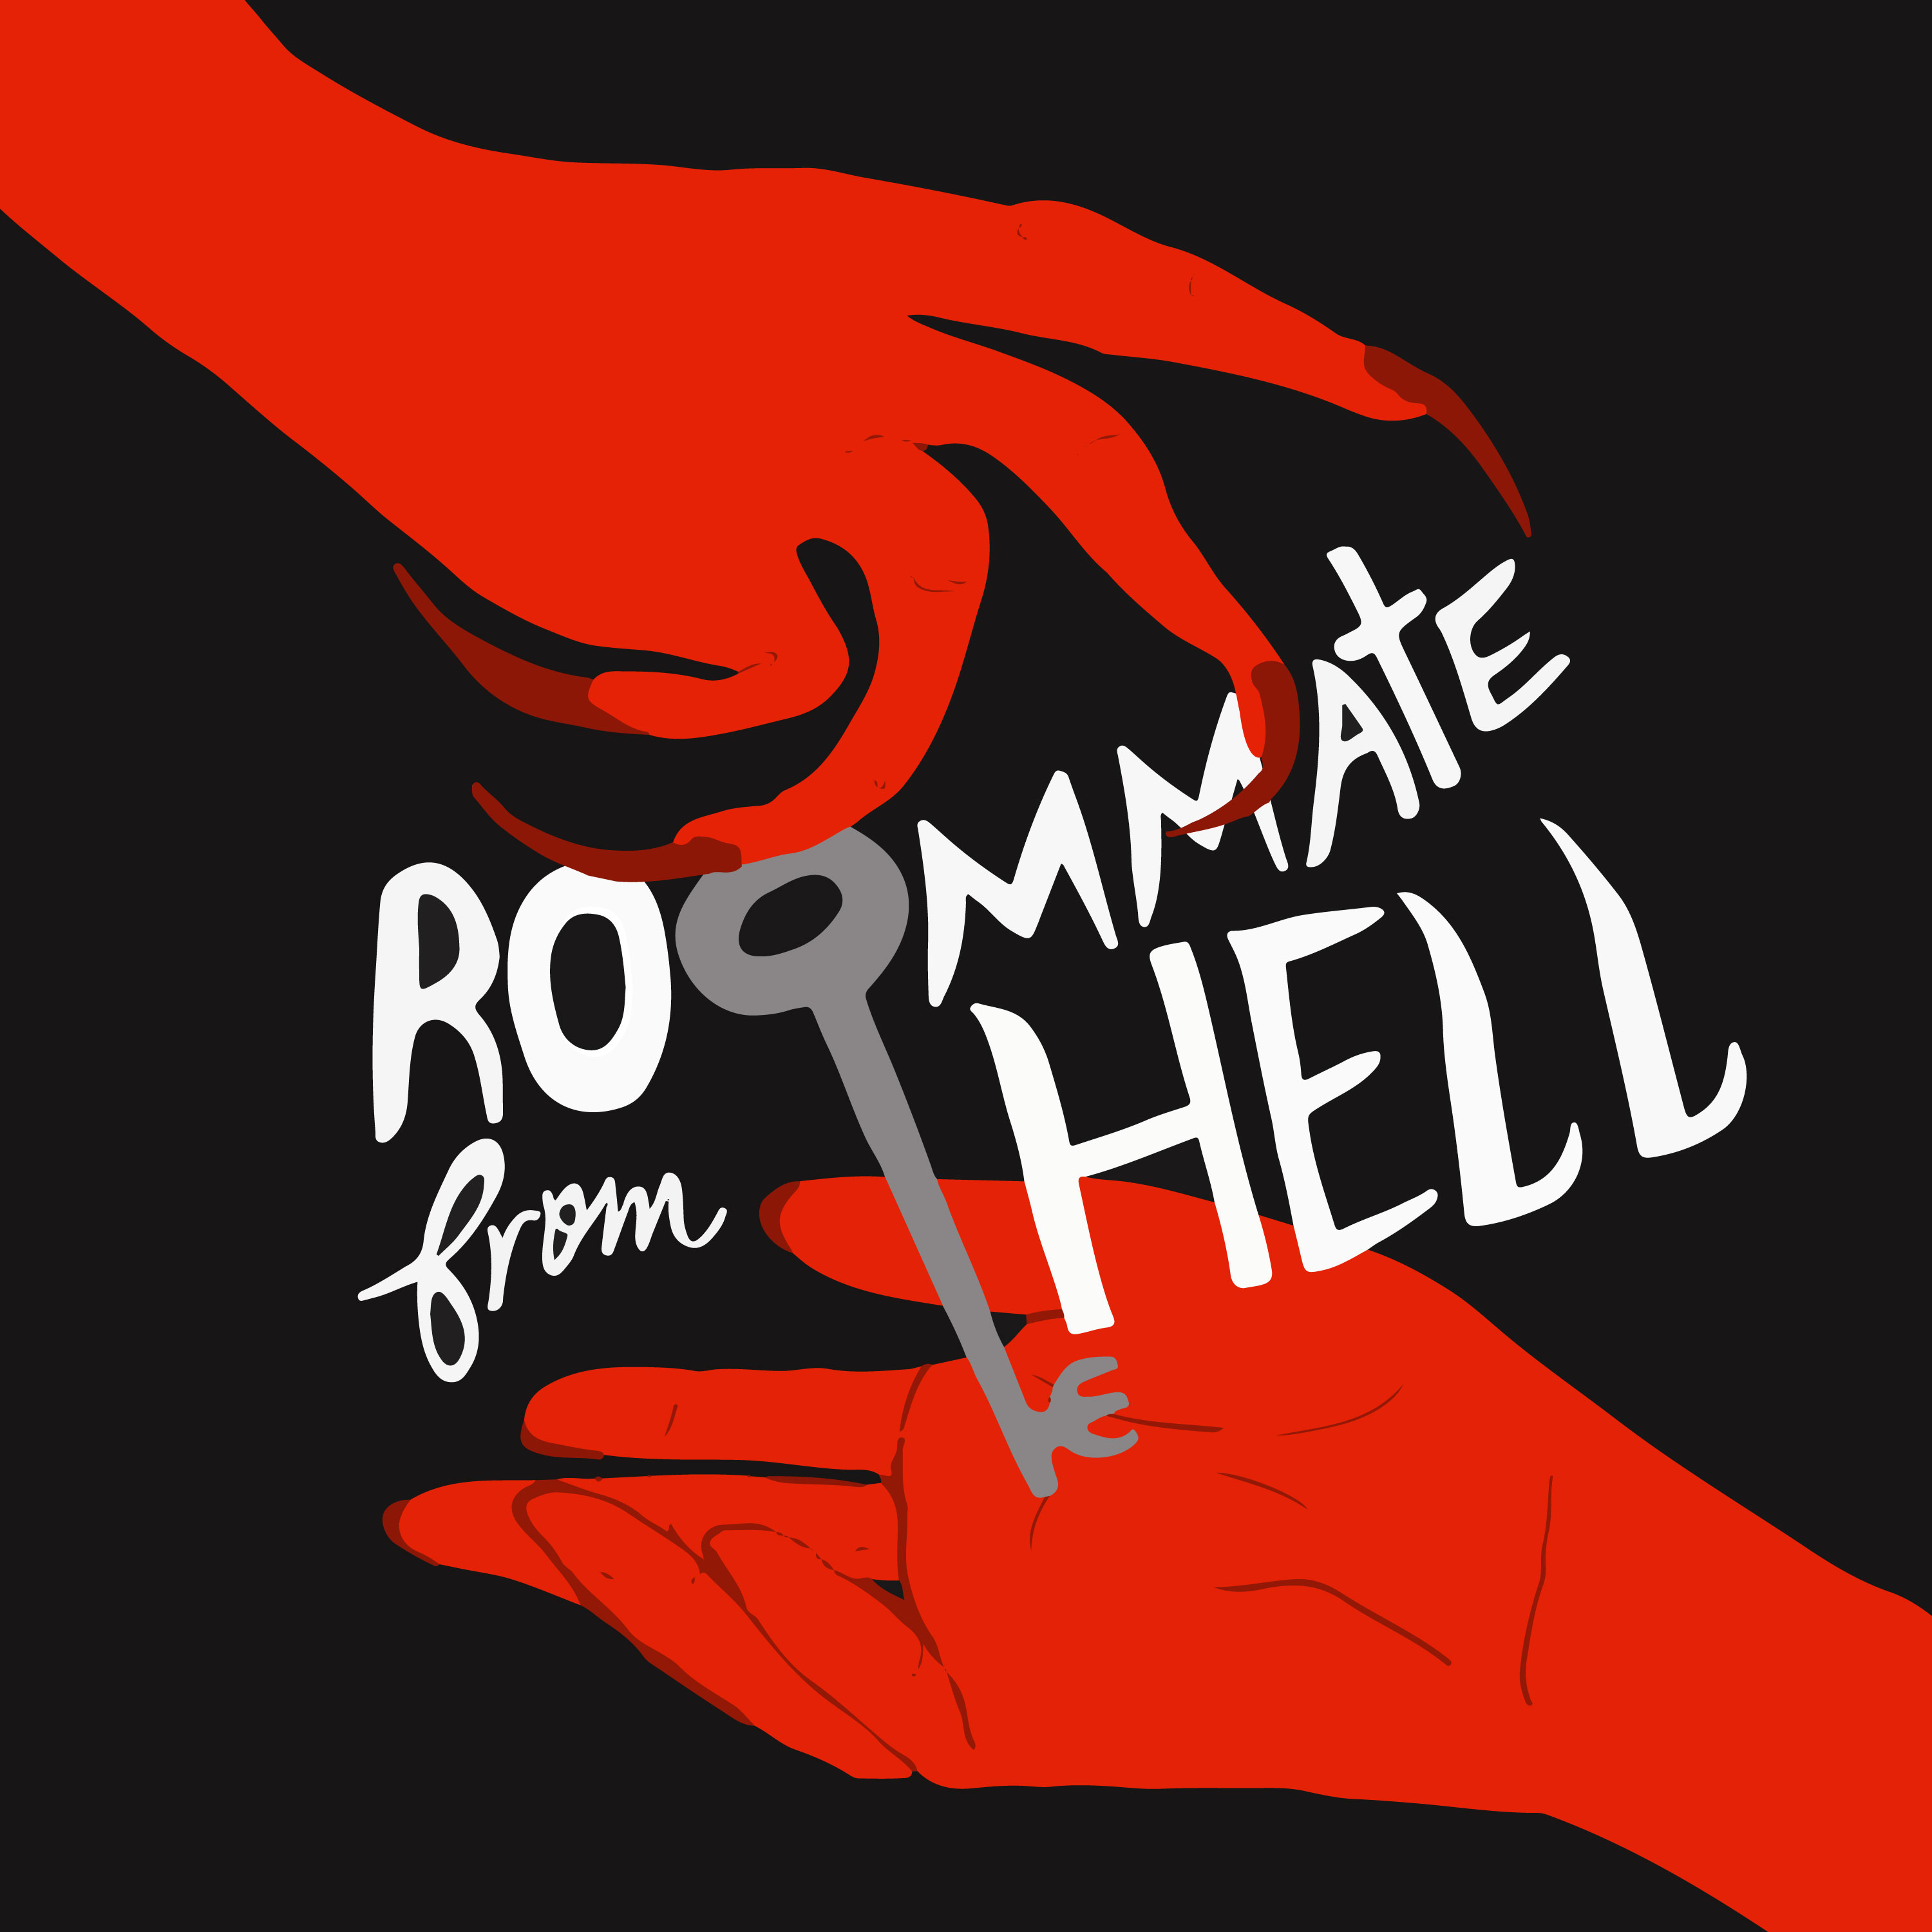 Artwork for podcast Roommate From Hell